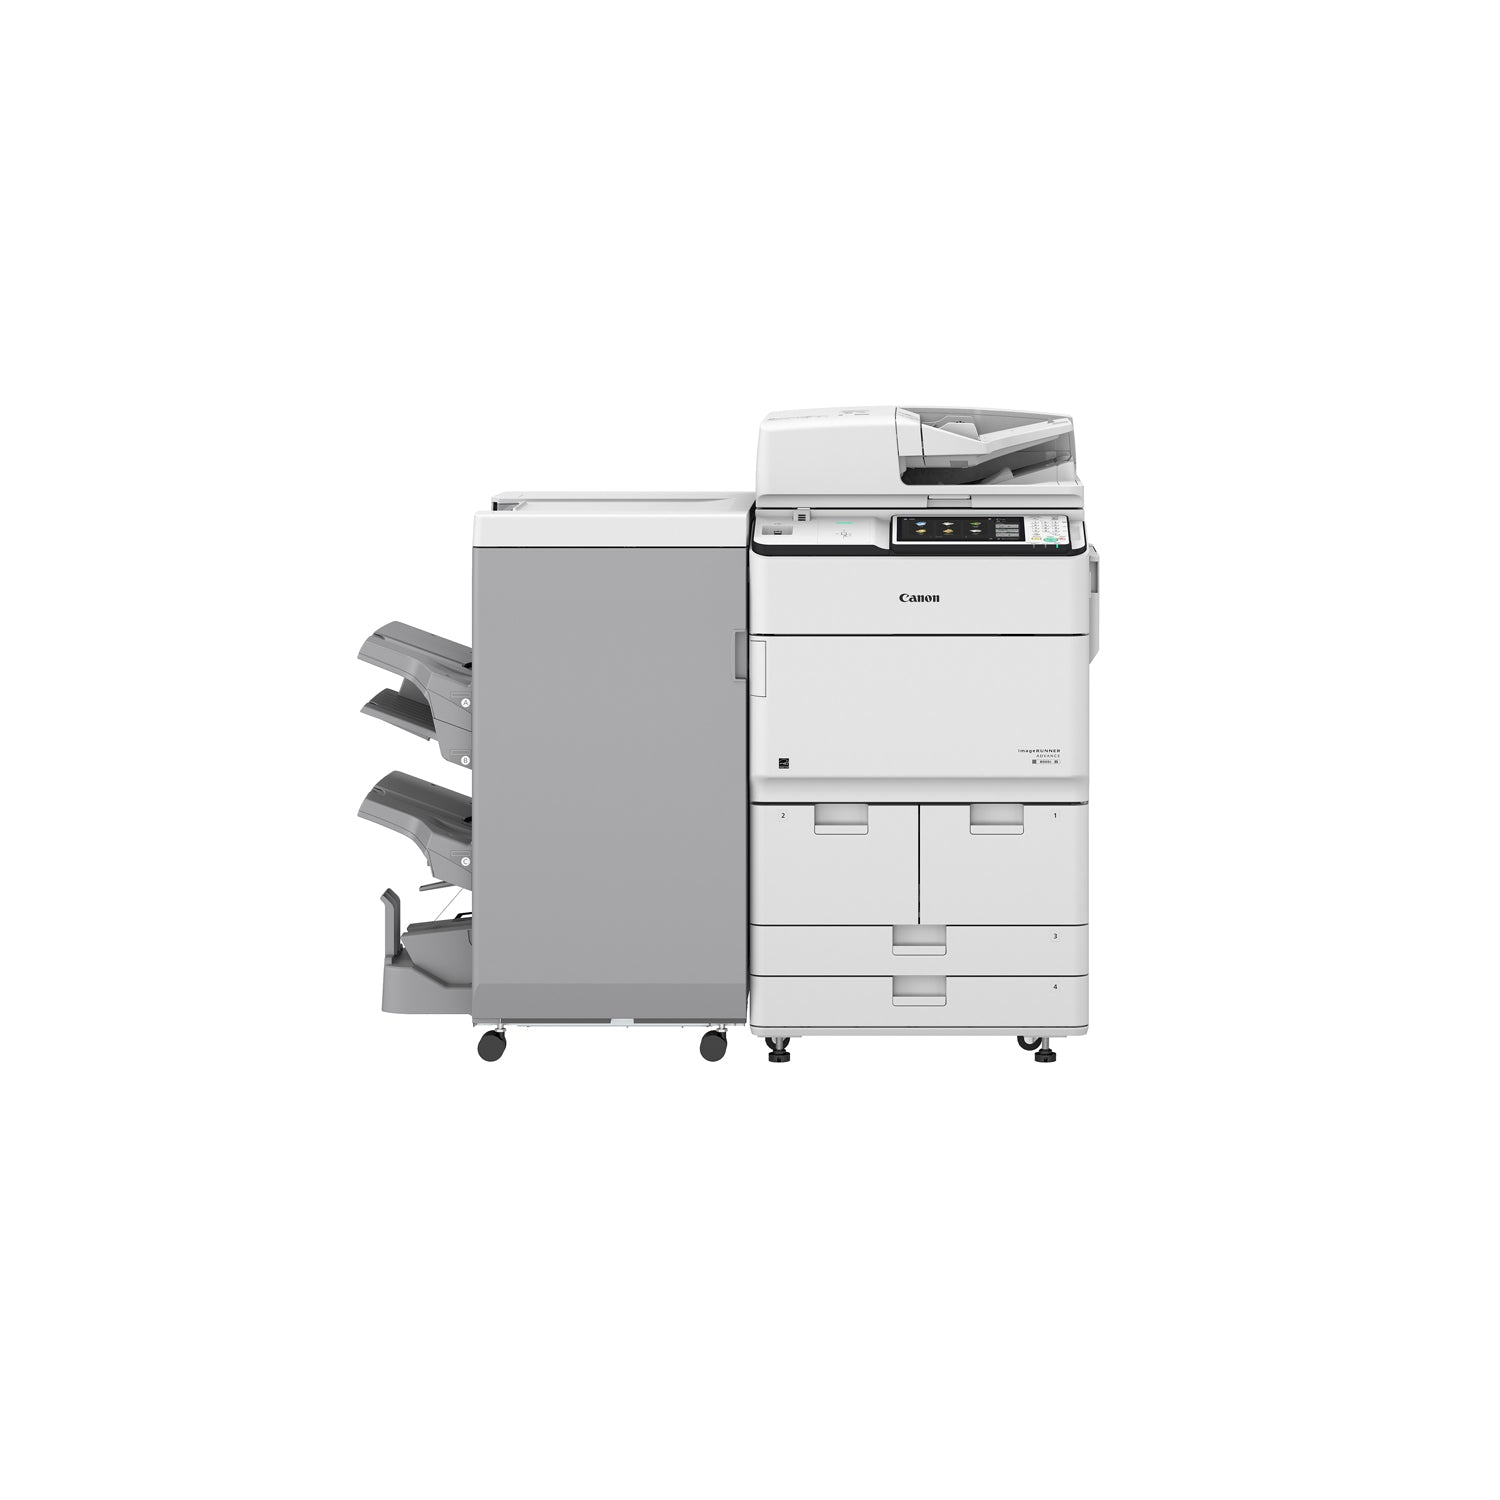 imageRUNNER ADVANCE 8500i III Series